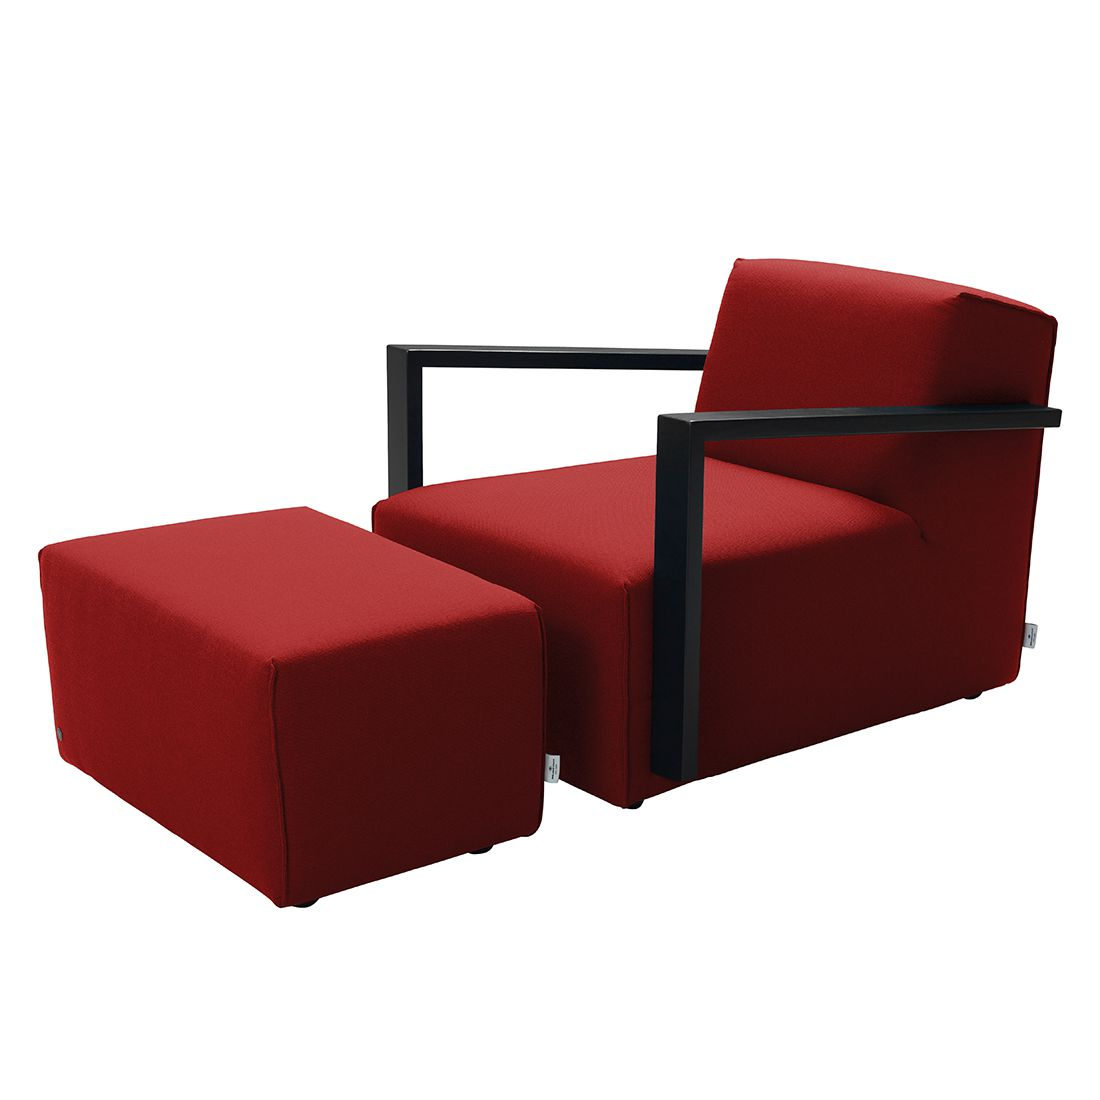 sessel lazy webstoff mit hocker rot tom tailor online kaufen bei woonio. Black Bedroom Furniture Sets. Home Design Ideas